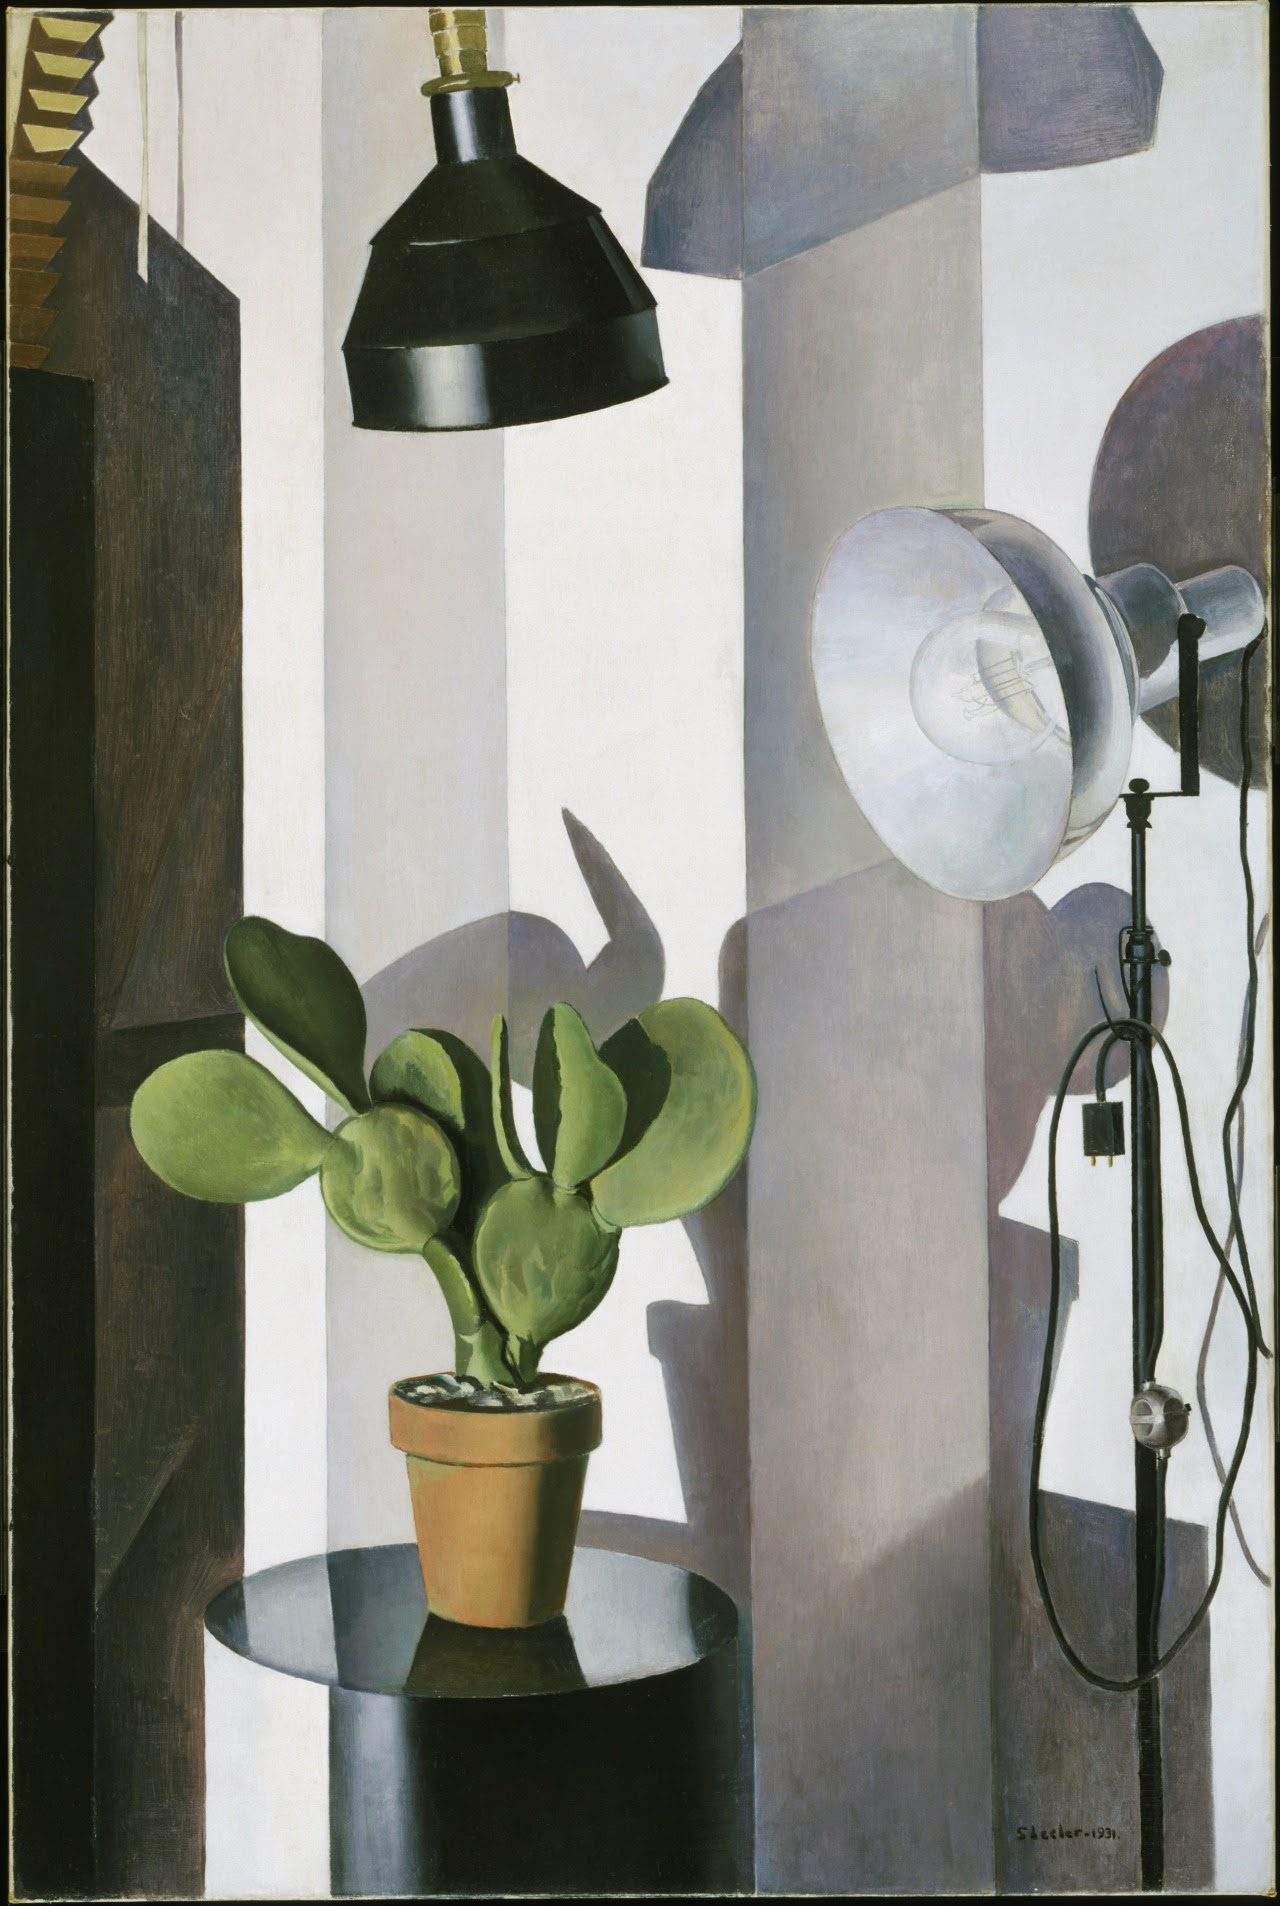 "philamuseum:  What do you think Charles Sheeler was trying to express with this still life painting? Share pictures of still life that represent you with #StillLifeSelfie for a chance to win a prize package including Terrain, Federal Donuts, and Art in the Age of Mechanical Reproduction gift cards as well as a two-night weekend stay at the Radisson Blu Warwick Hotel, Philadelphia. More information here. ""Cactus,"" 1931, by Charles Sheeler"